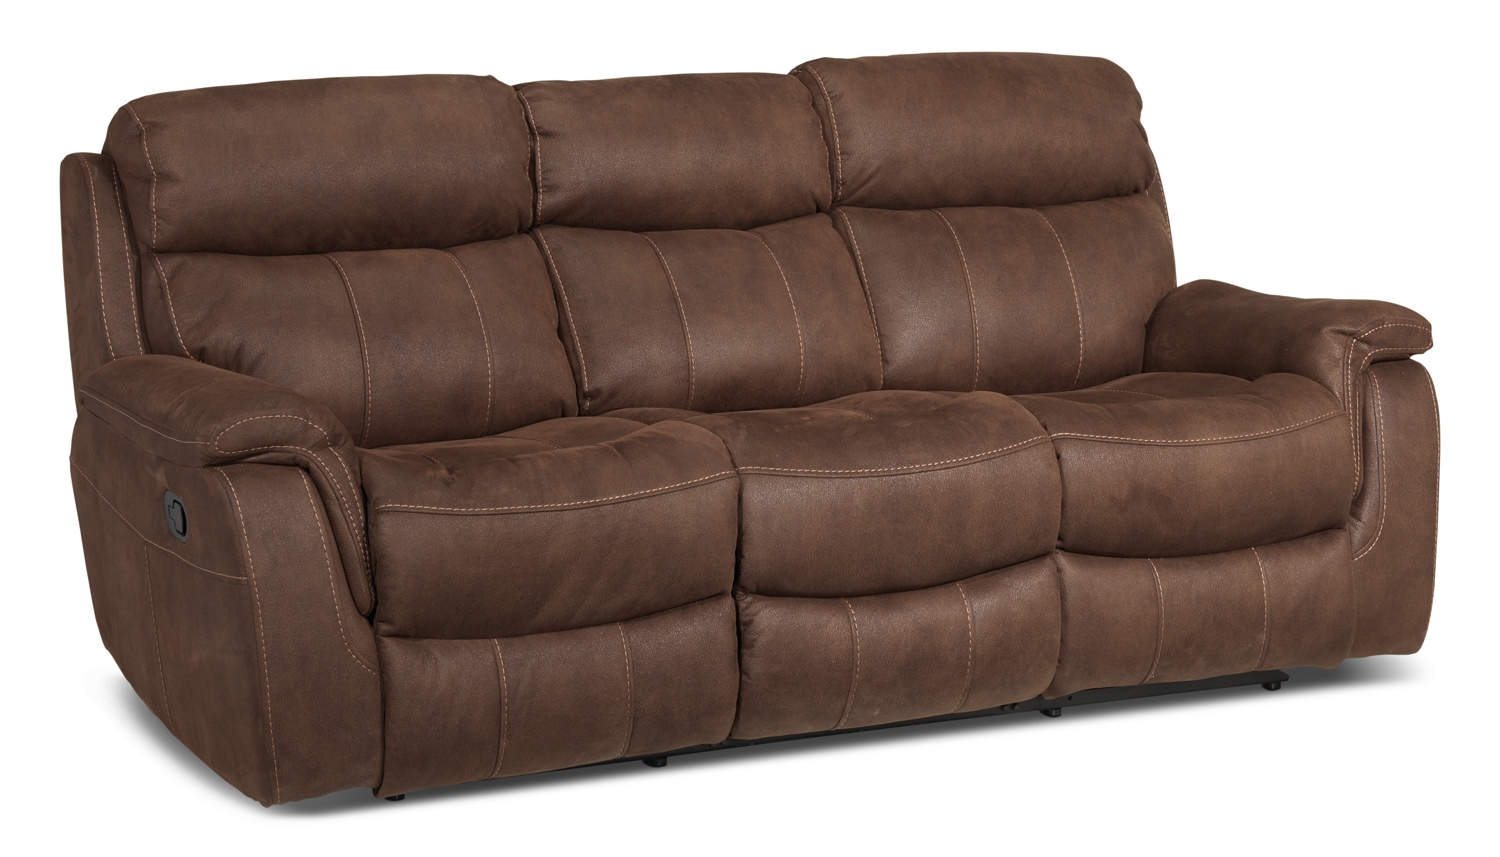 Living Room Furniture - Morrow Reclining Sofa - Saddle Brown